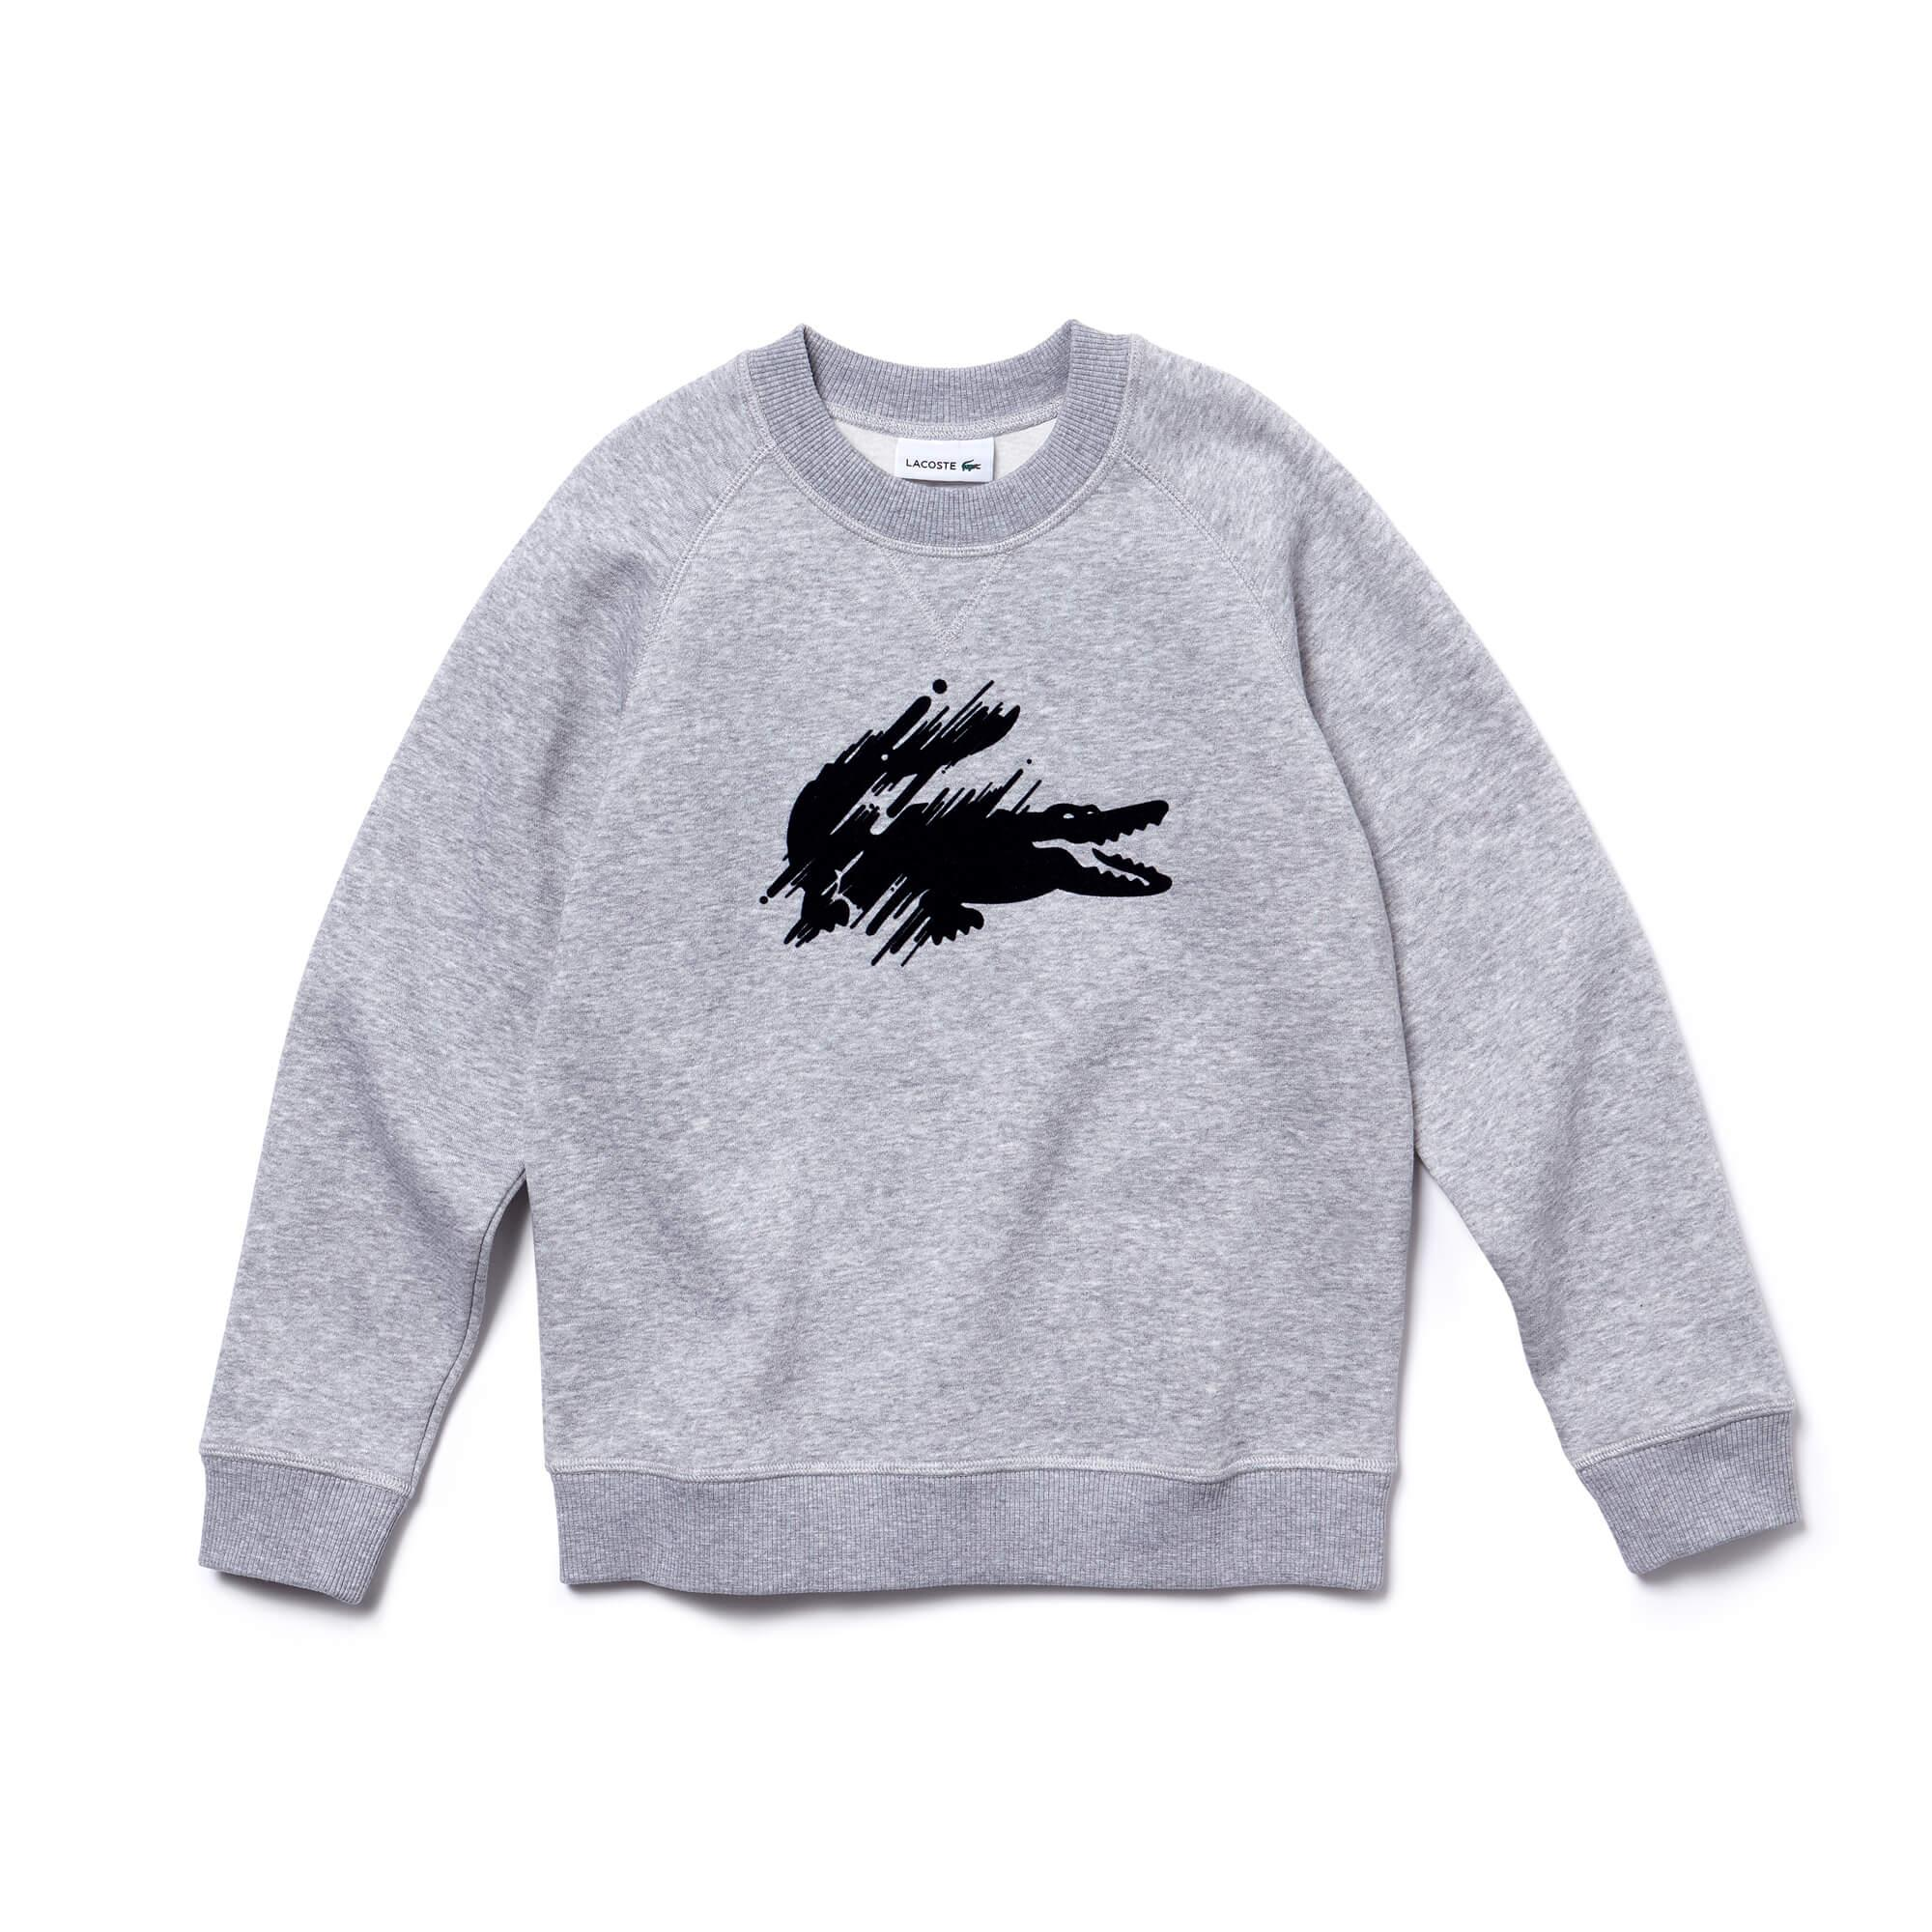 Lacoste Boys' Flocked Crocodile Fleece Sweatshirt